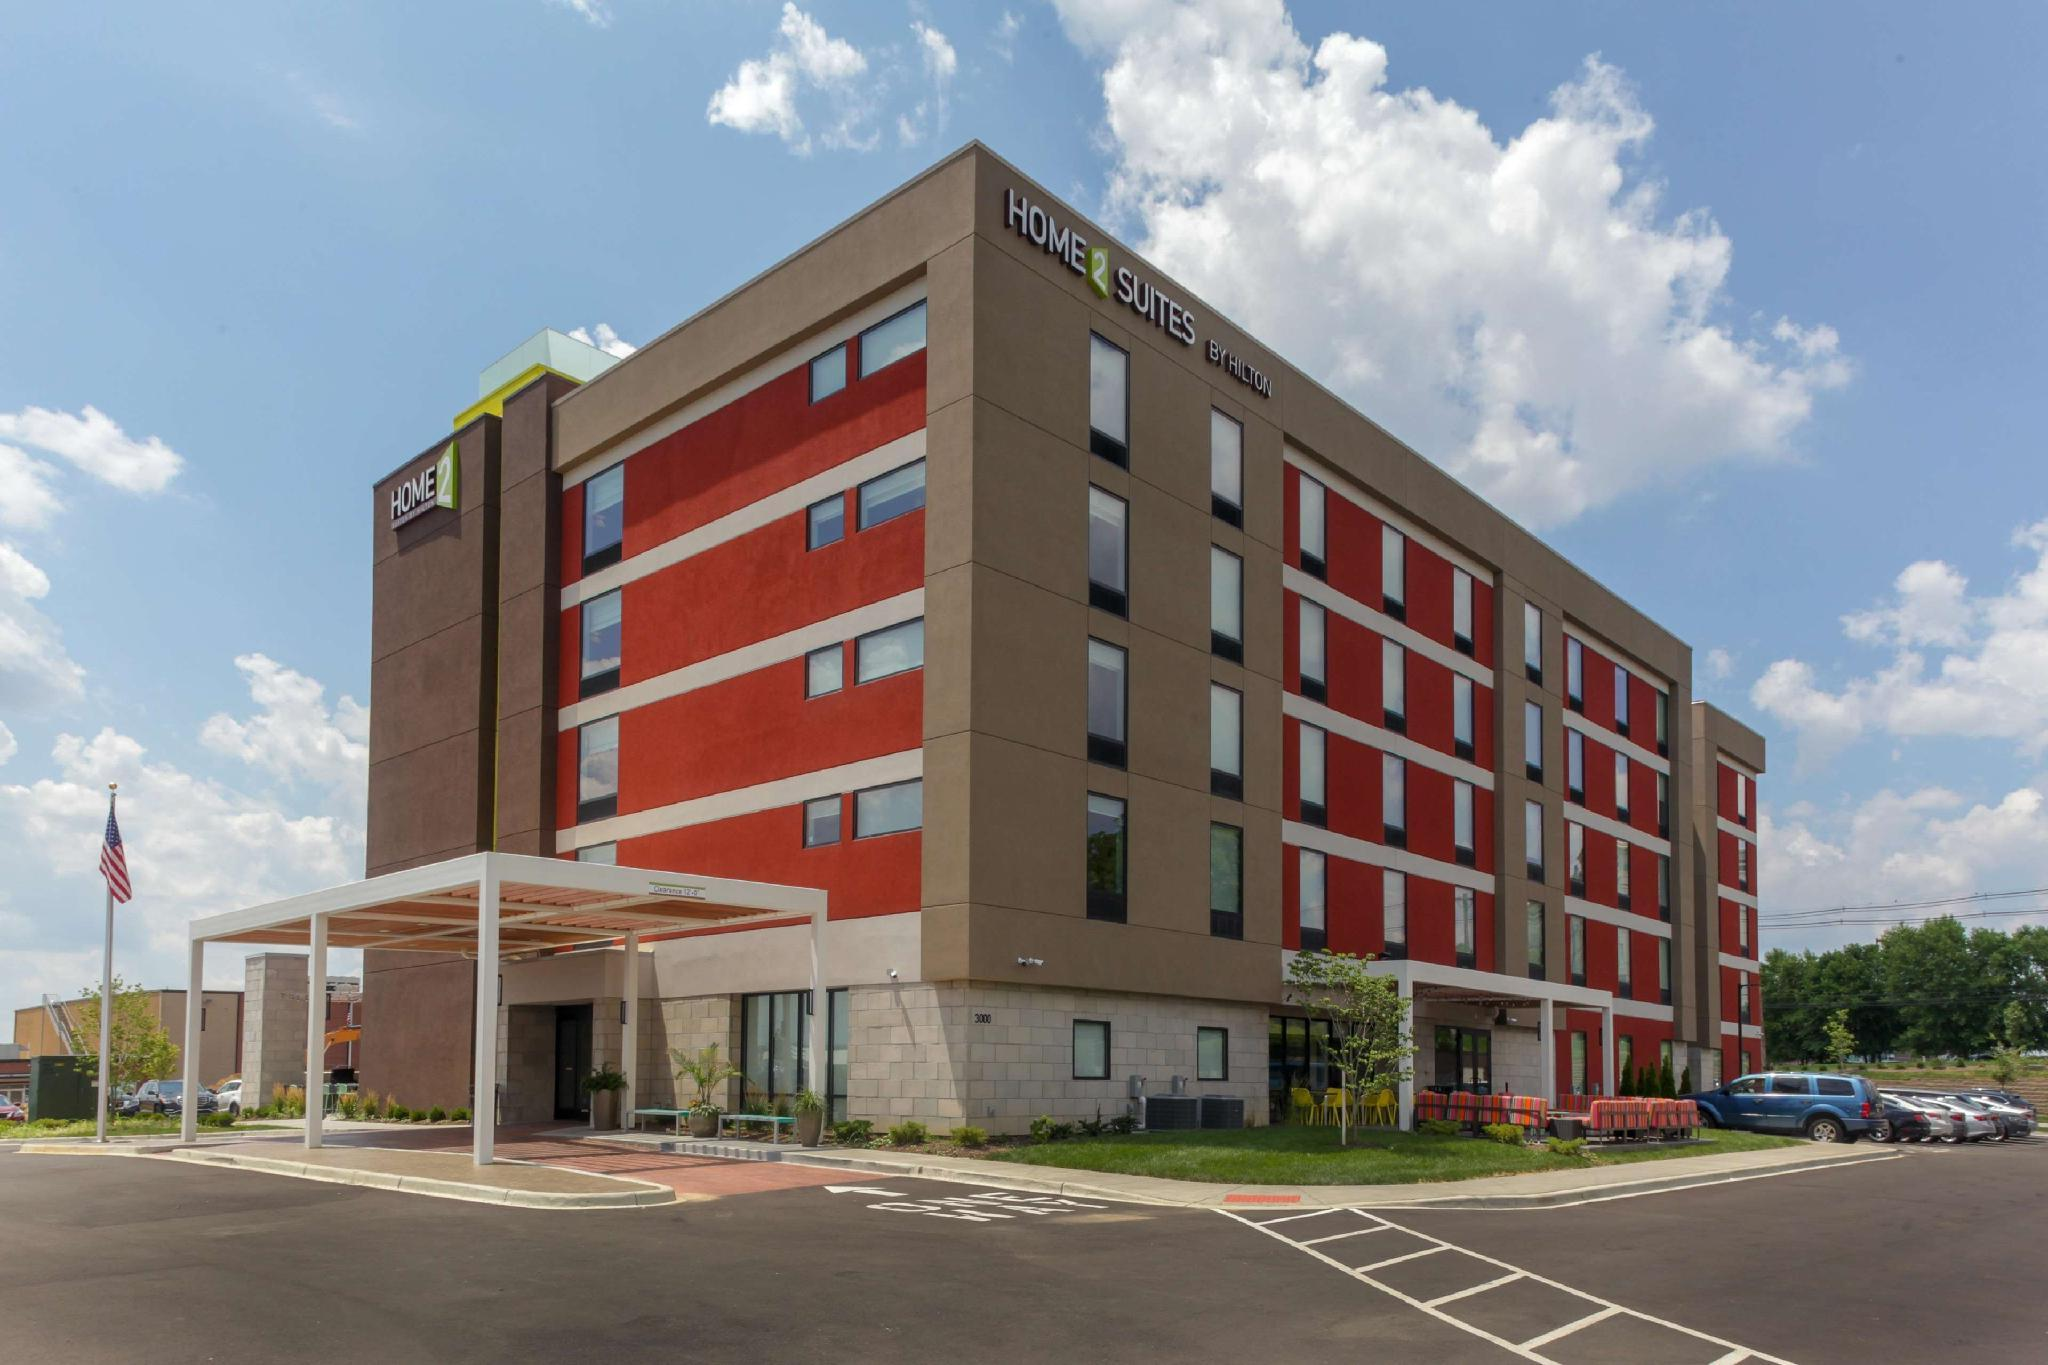 Home2 Suites by Hilton Louisville Airport/Expo Center